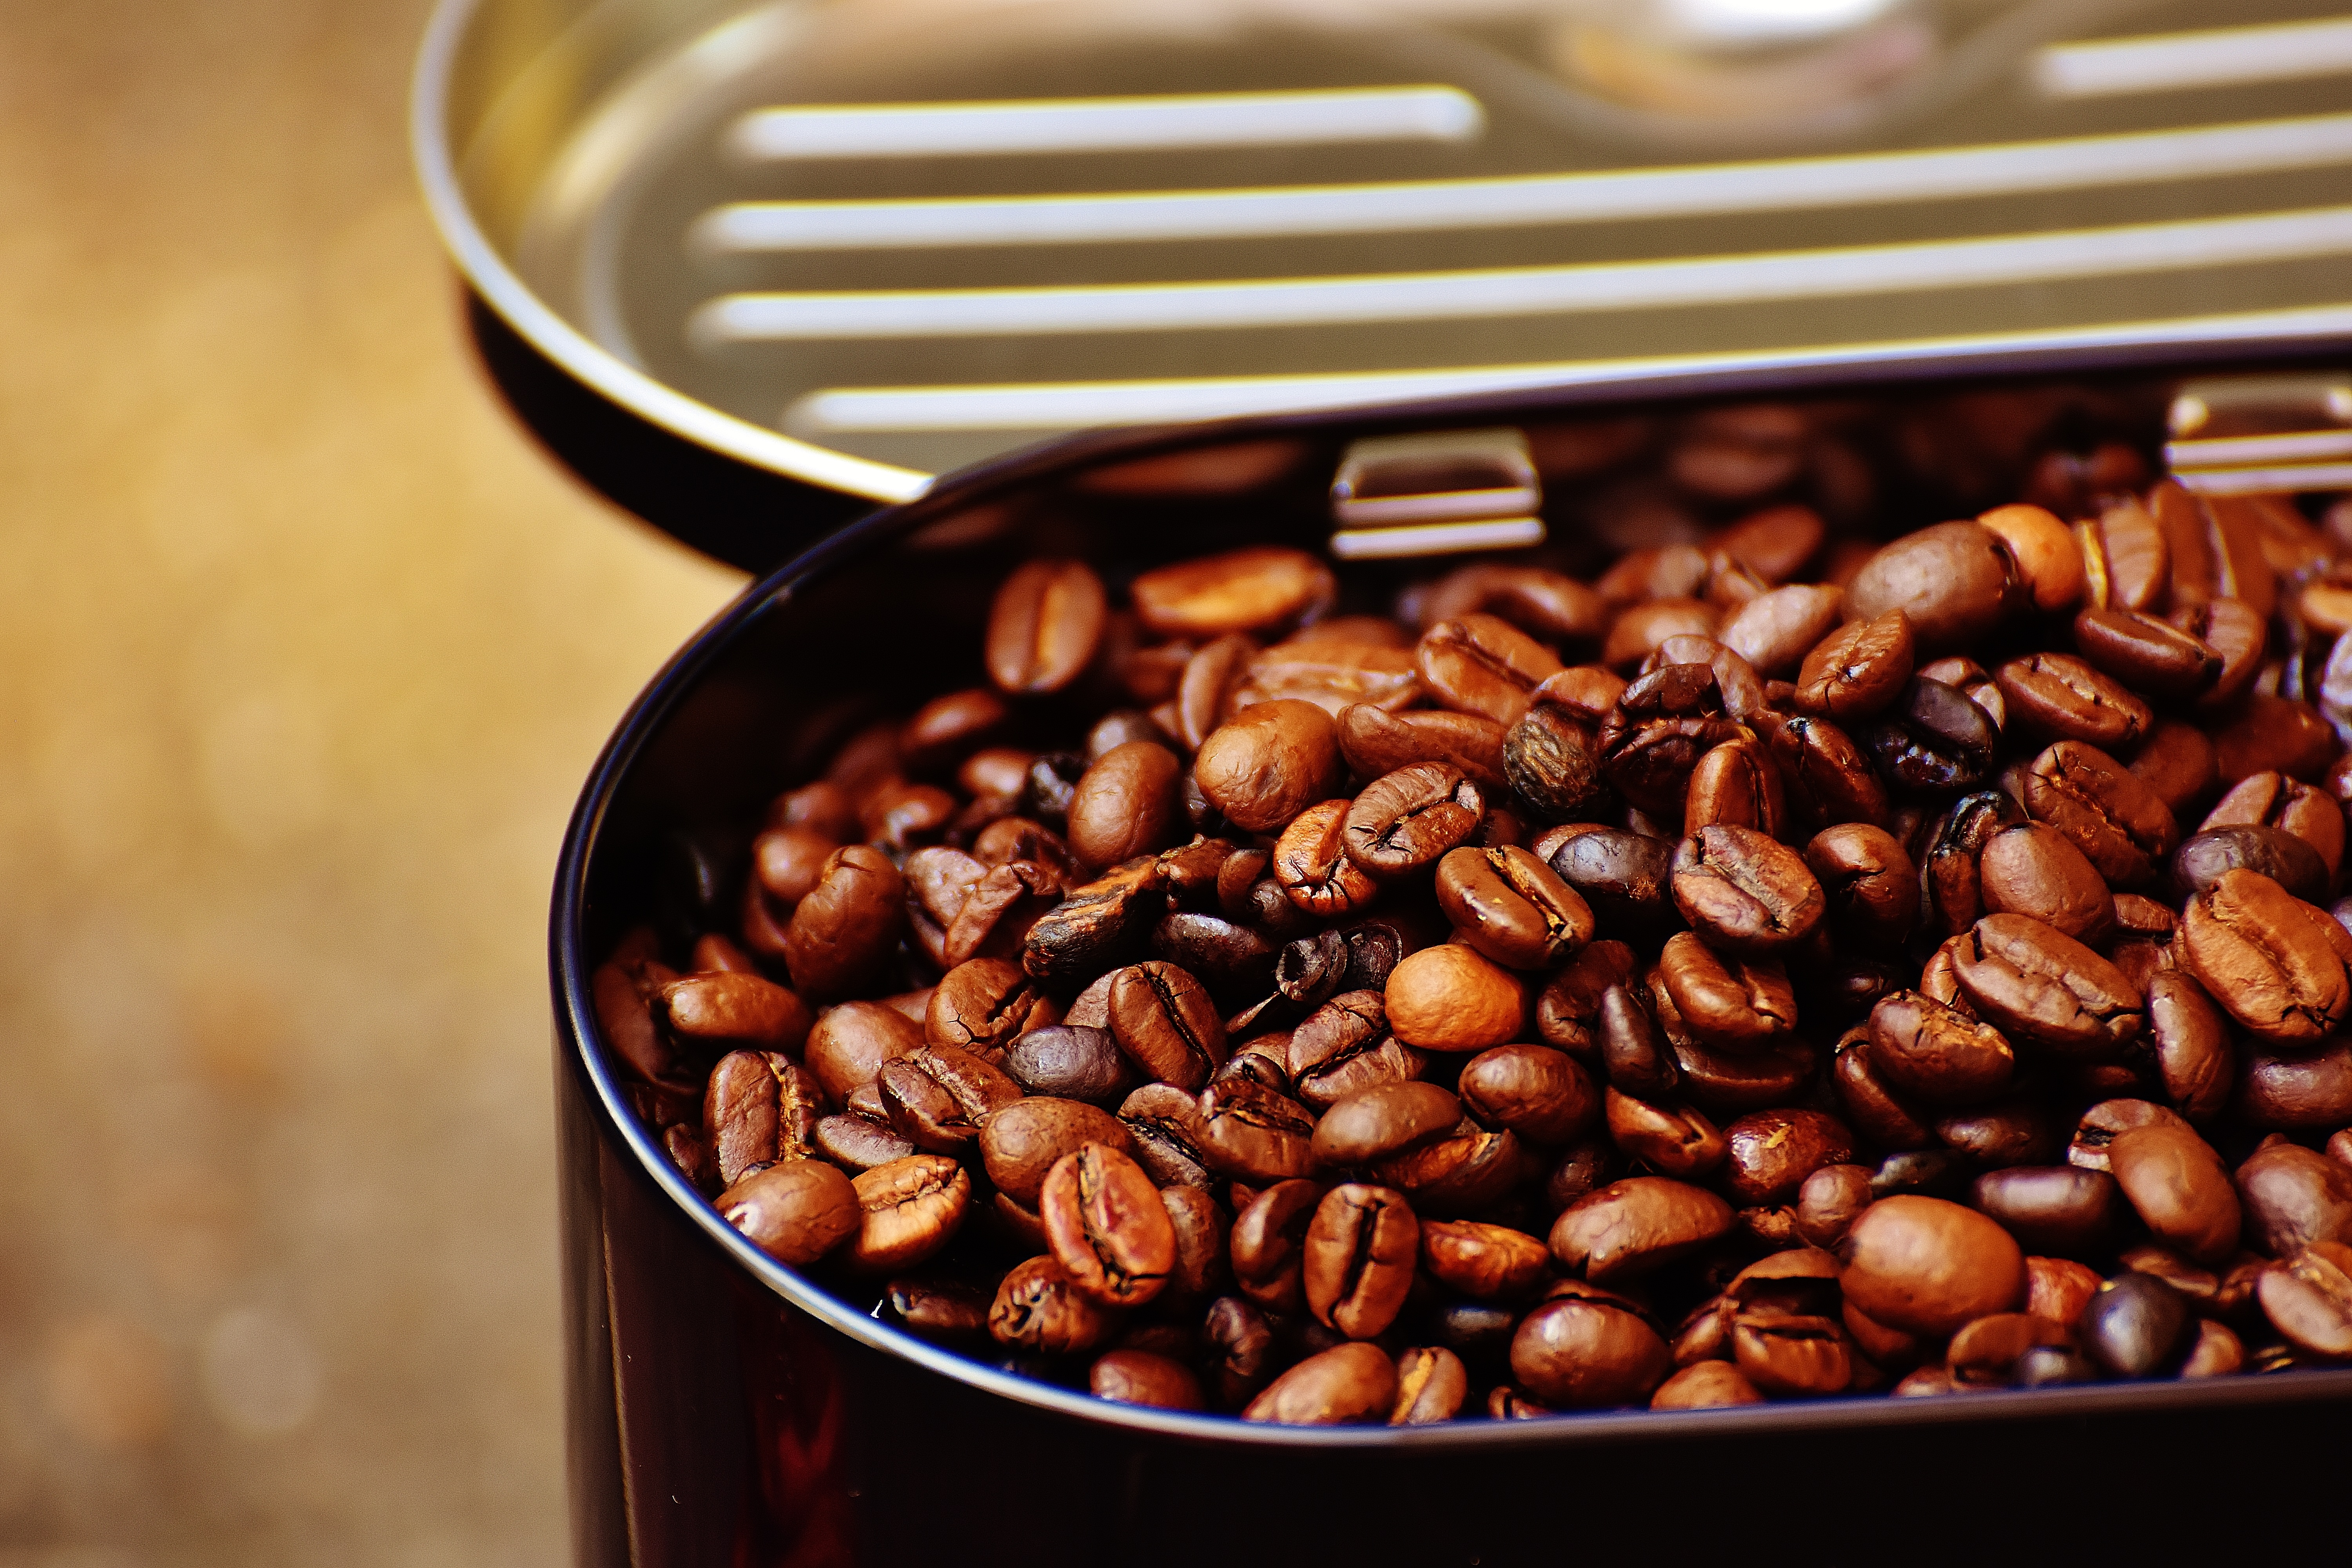 Free Cool Wallpapers For Iphone Brown Coffee Beans 183 Free Stock Photo